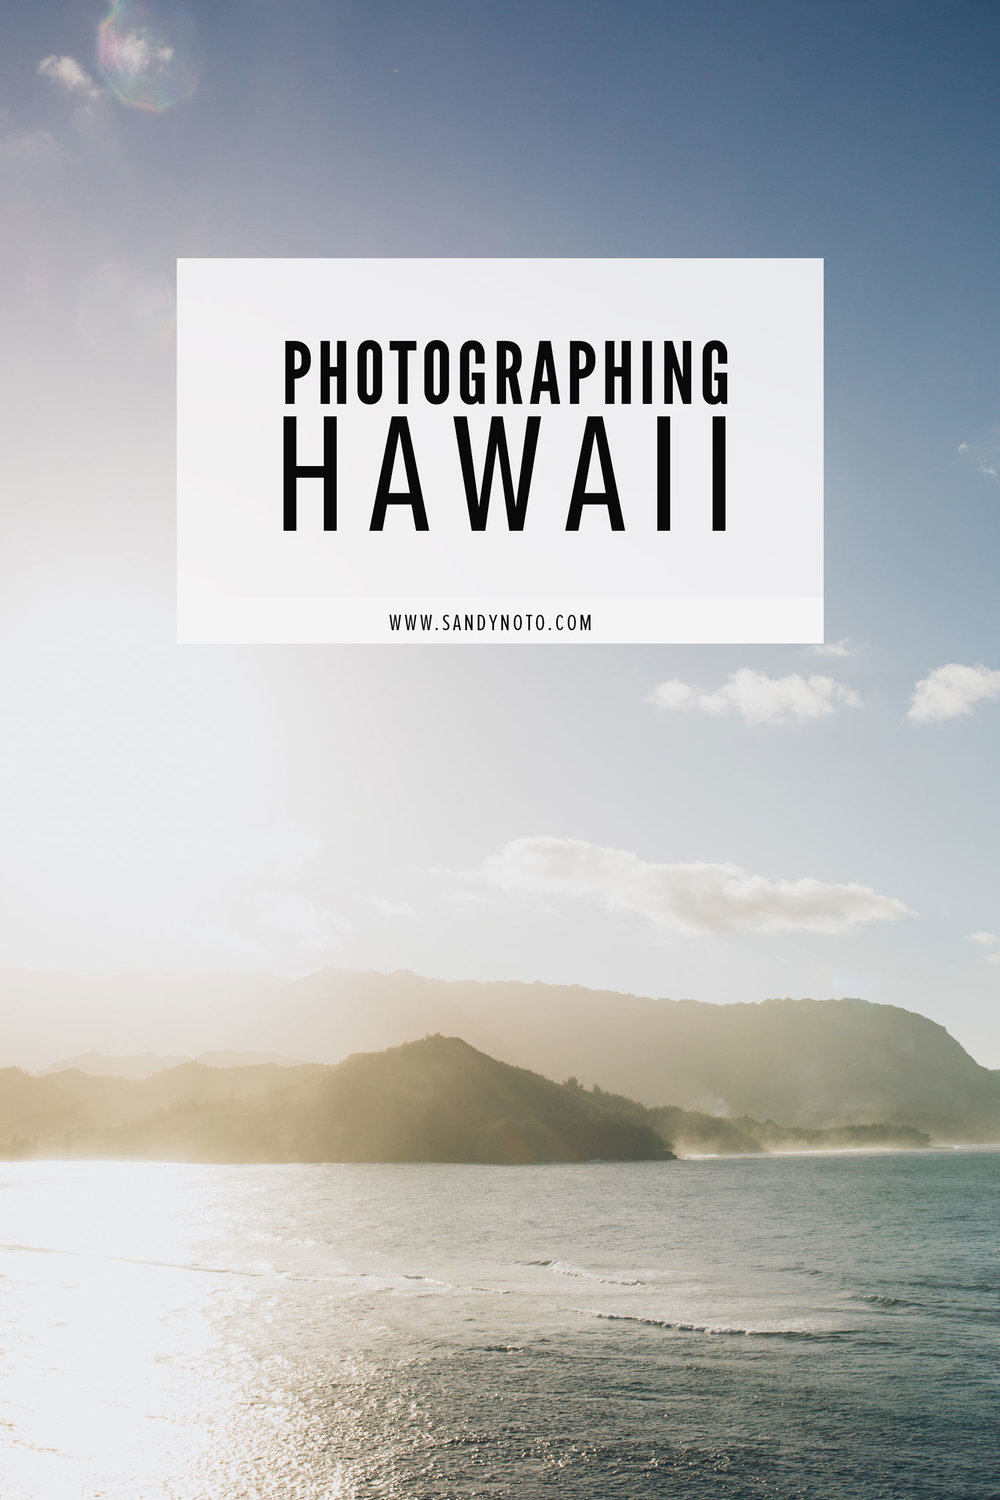 Photographing Hawaii